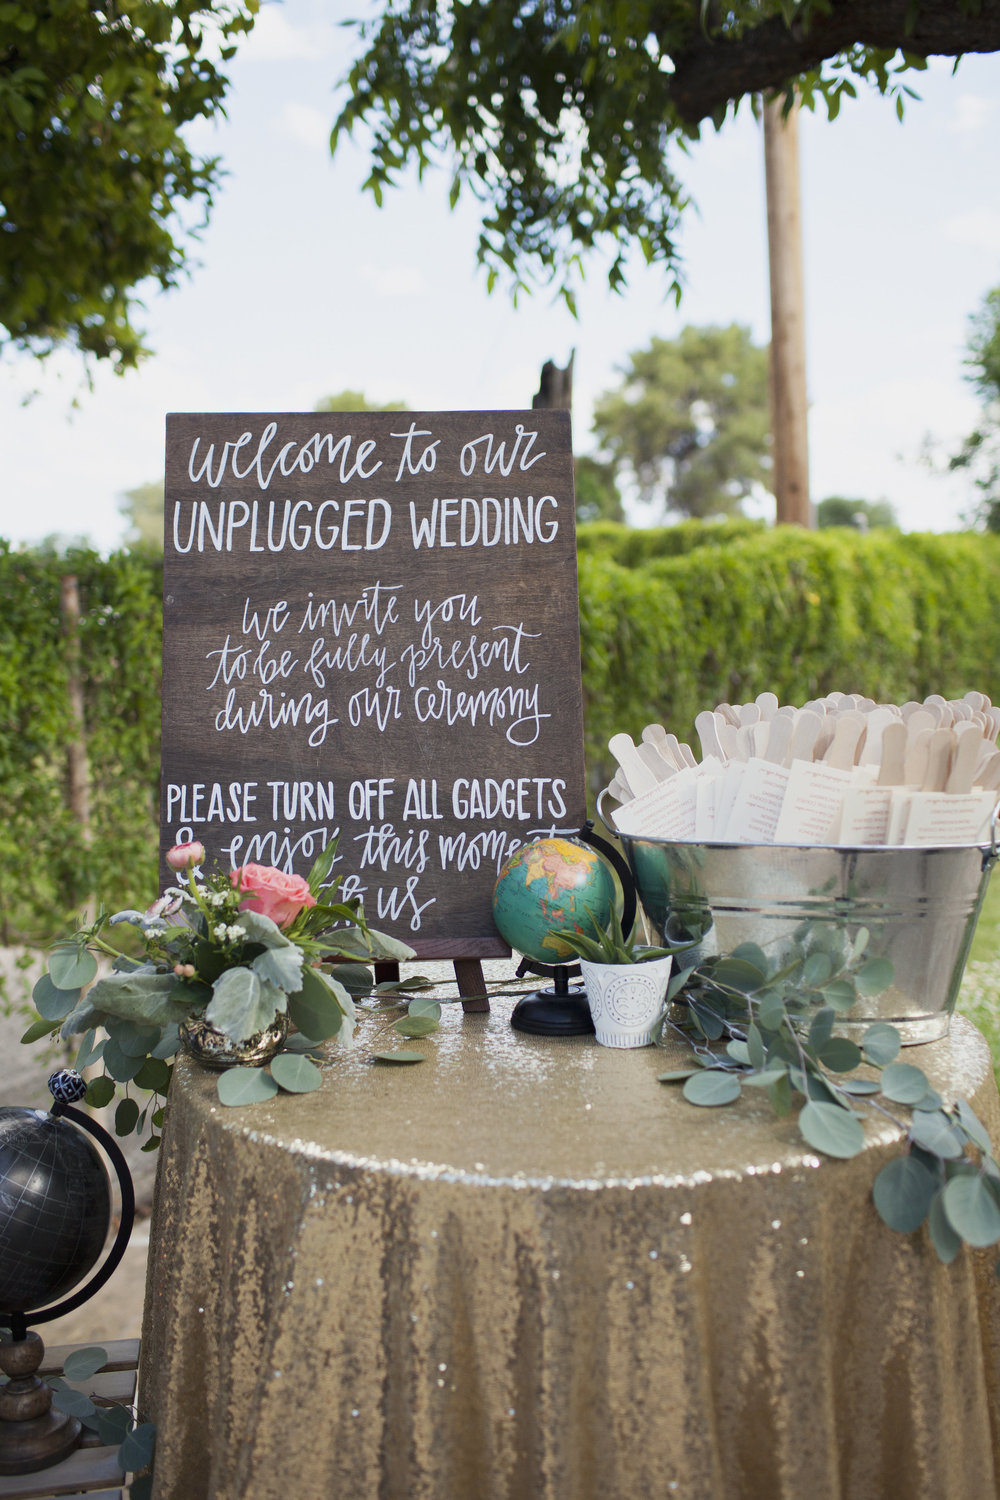 Backyard Wedding Celebration with Tremaine Ranch Wedding Event Tableware Vintage Rentals Arizona5.jpg